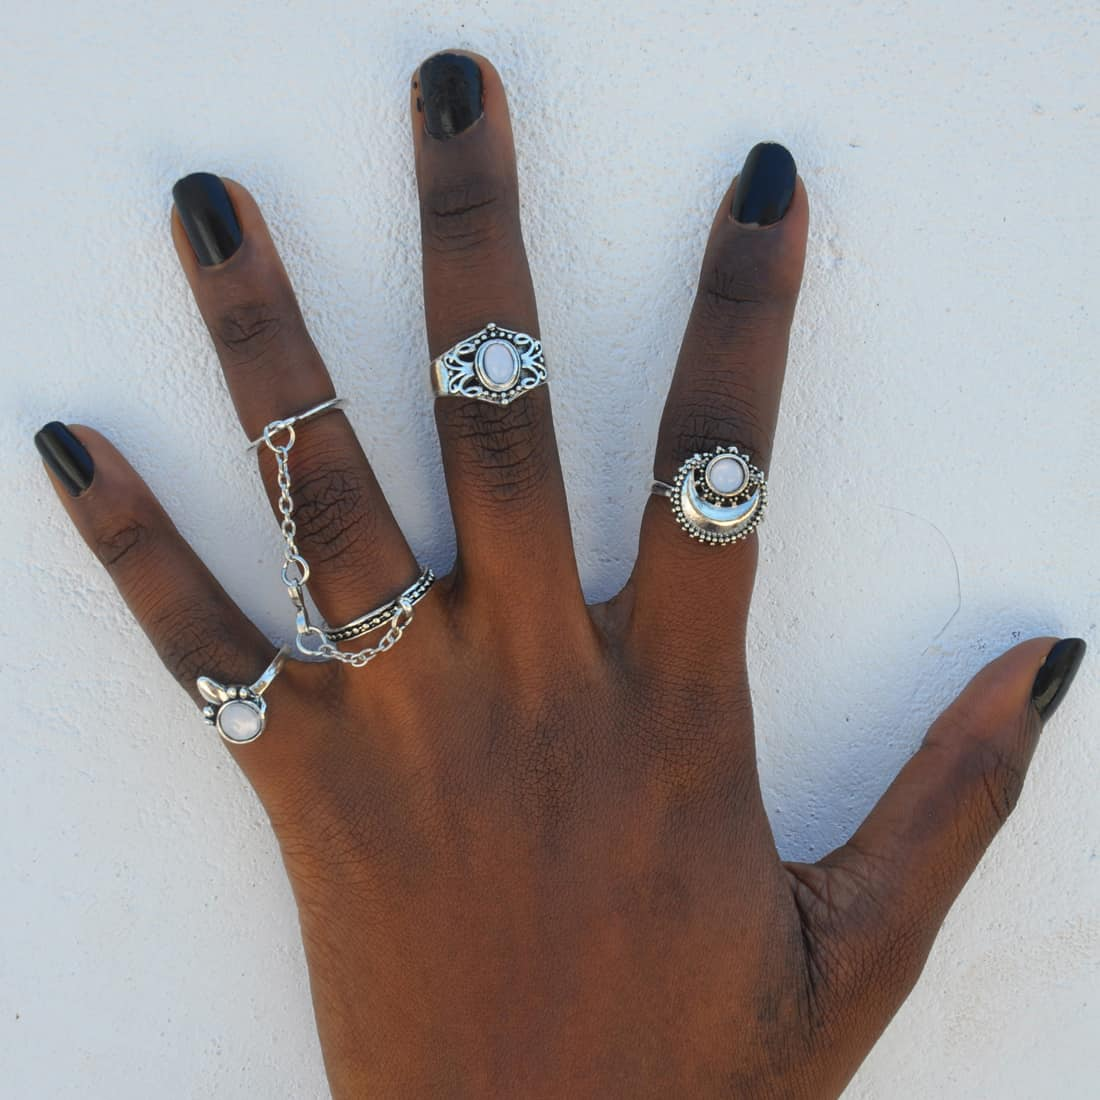 M0345 silver6 Jewelry Sets Rings maureens.com boutique